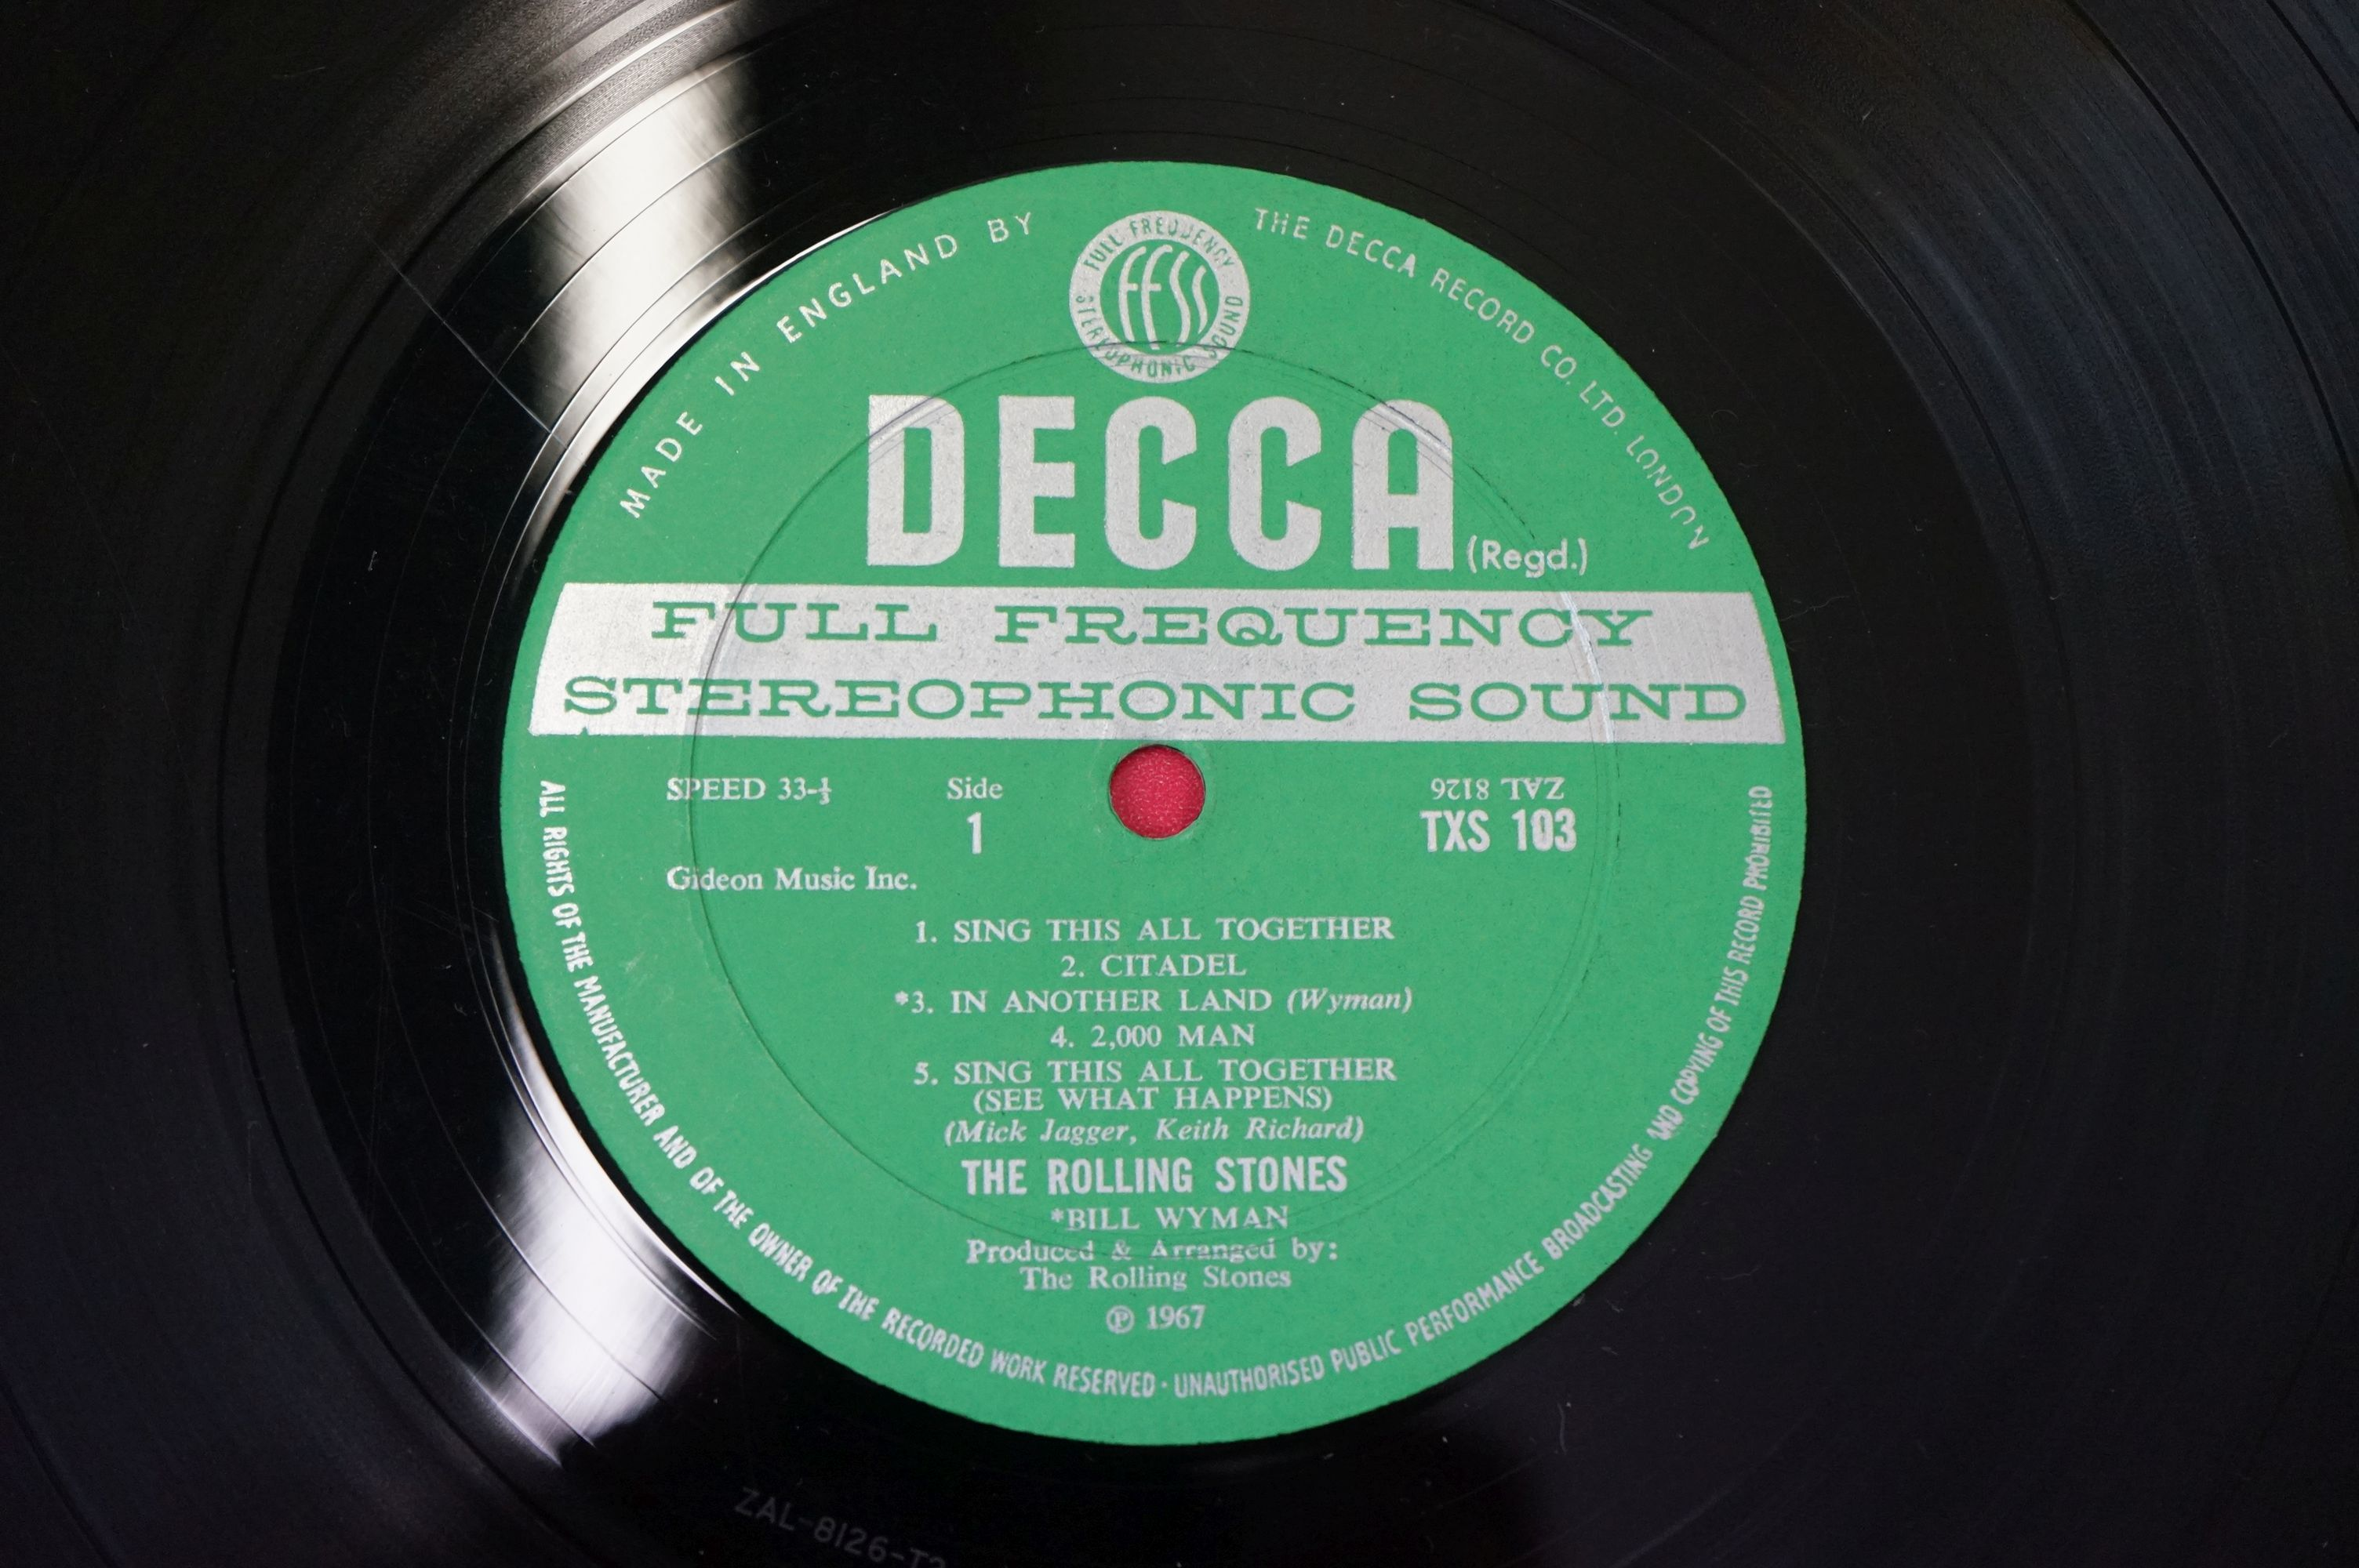 Vinyl - The Rolling Stones Their Satanic Majesties Request TXS103, Decca unboxed green stereo label, - Image 5 of 7